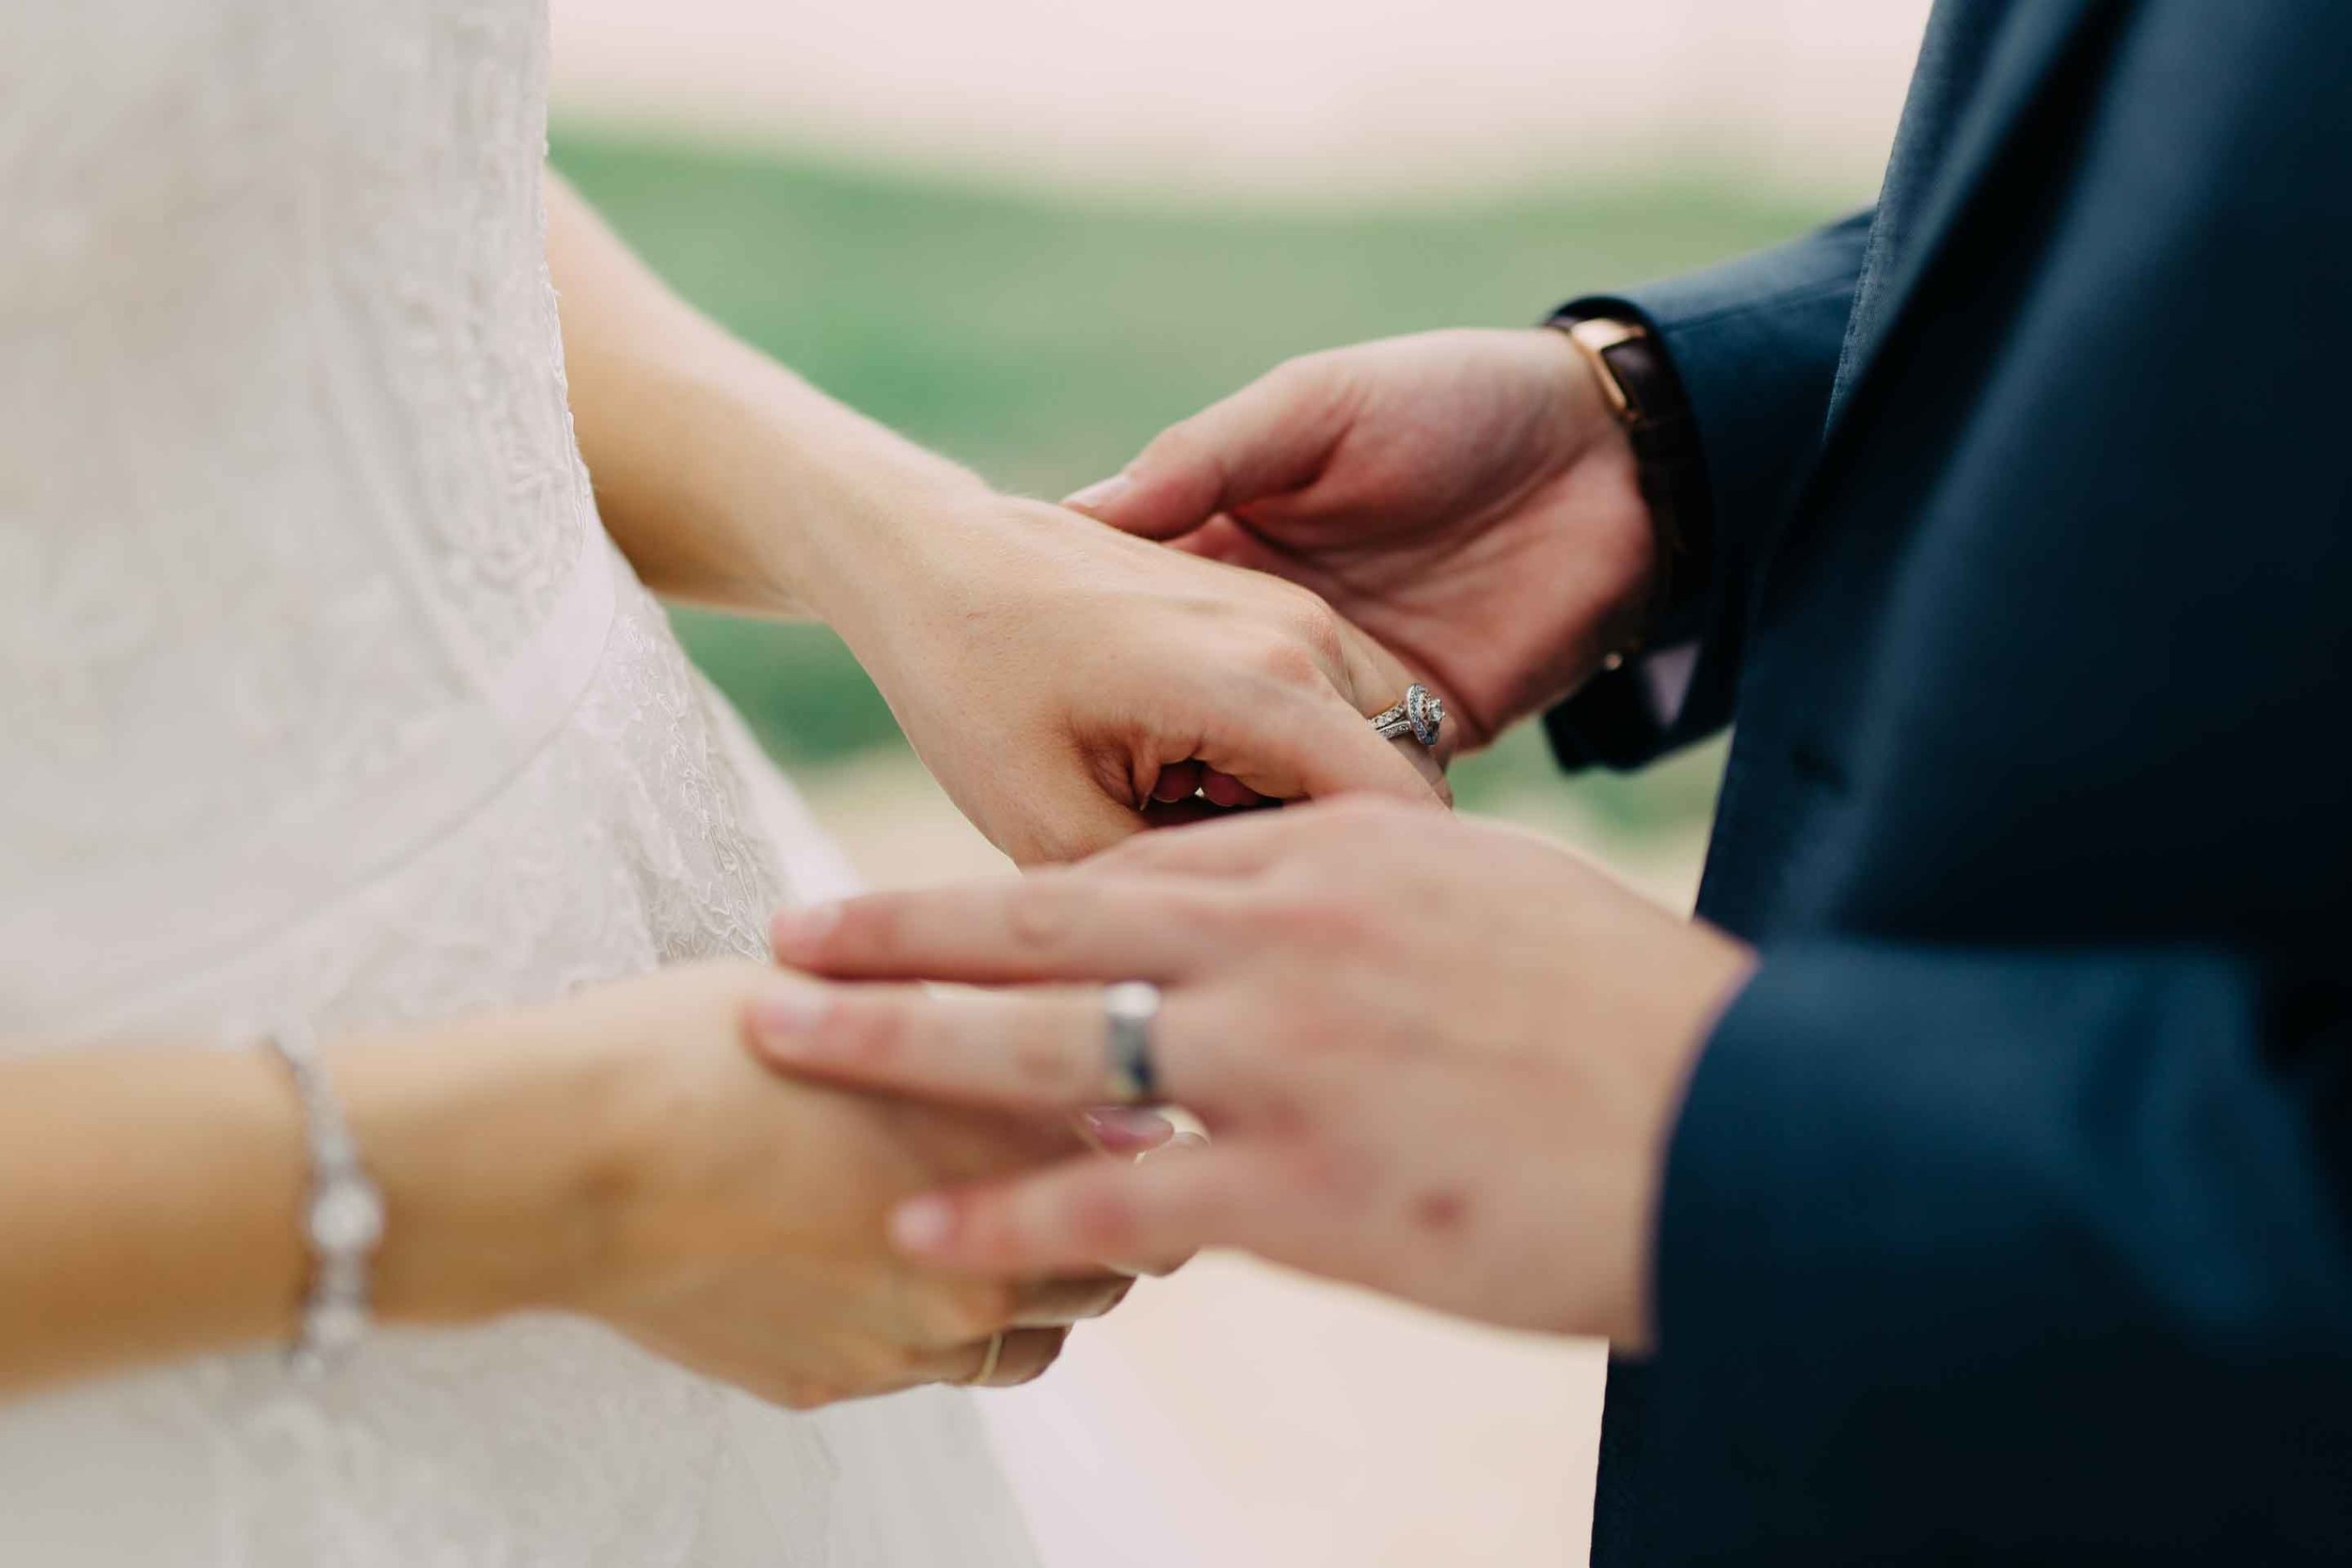 Newlyweds husband and wife hold hands and admire their rings after the marriage.